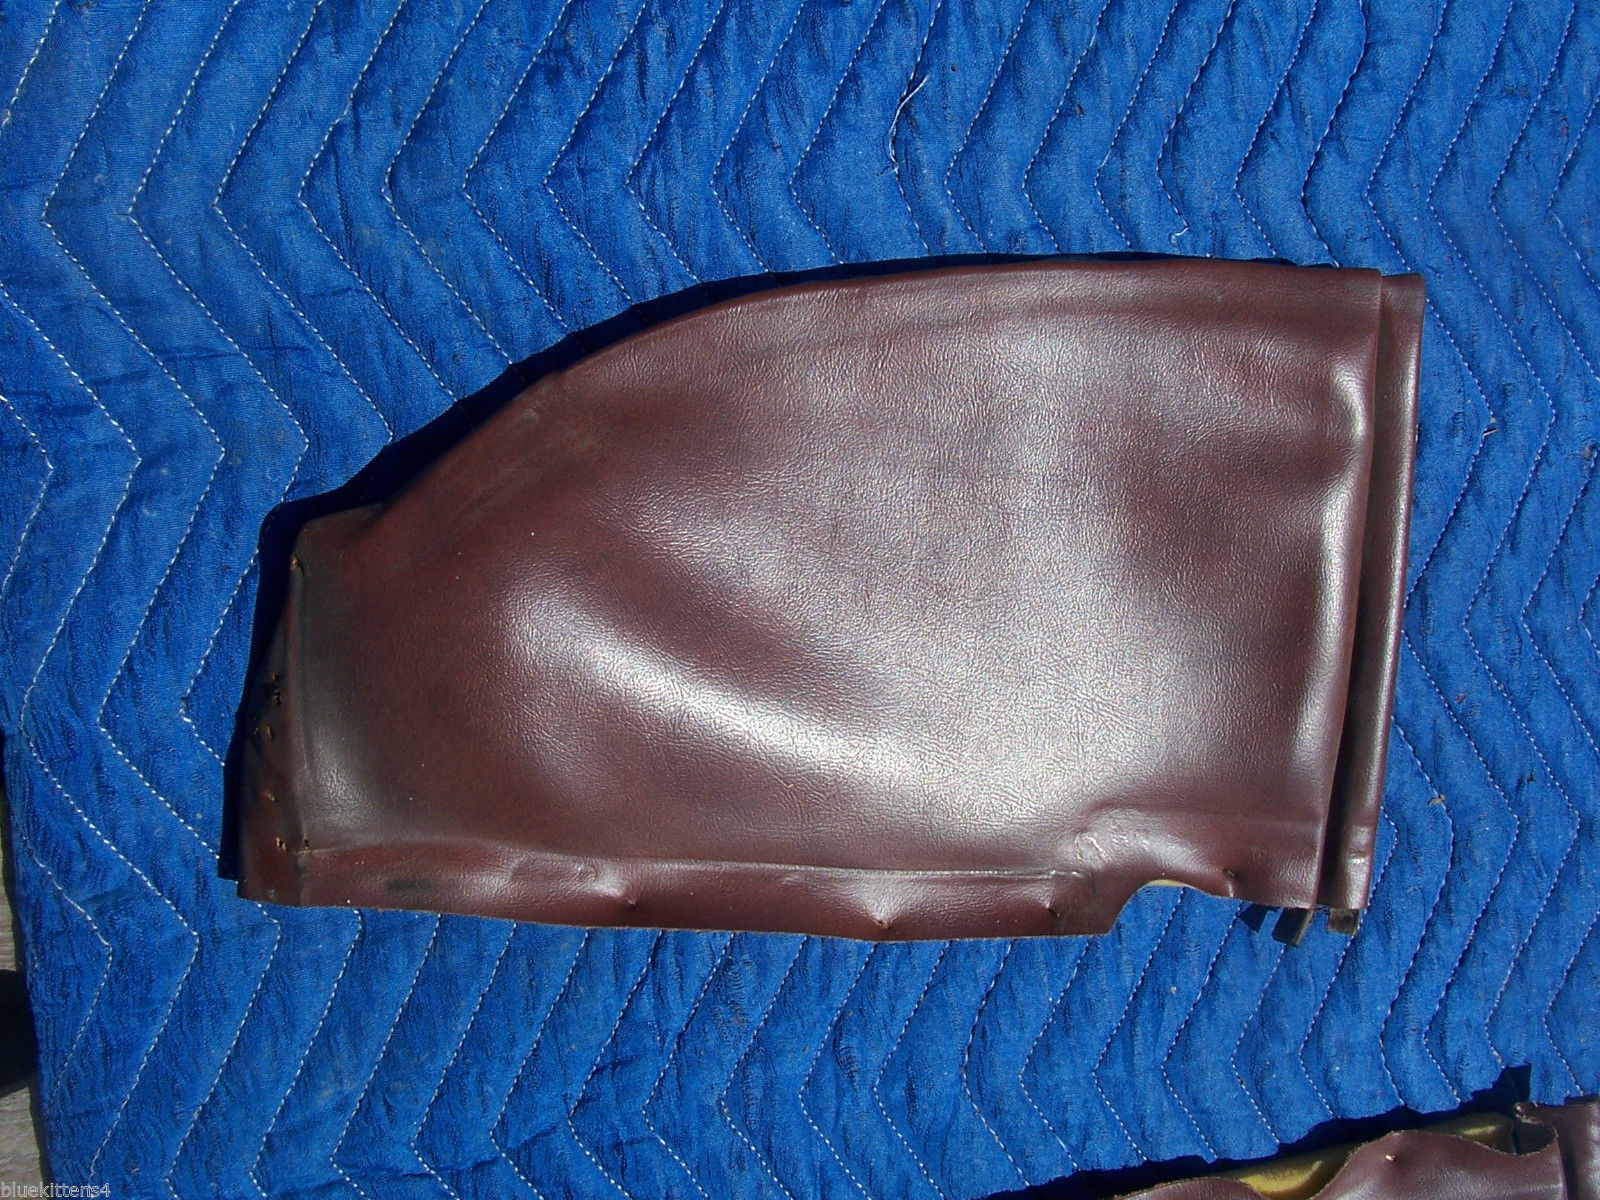 1979 COUPE DEVILLE LEFT DOOR PANEL PADS OEM USED GENUINE GM CADILLAC PART 1978 image 2